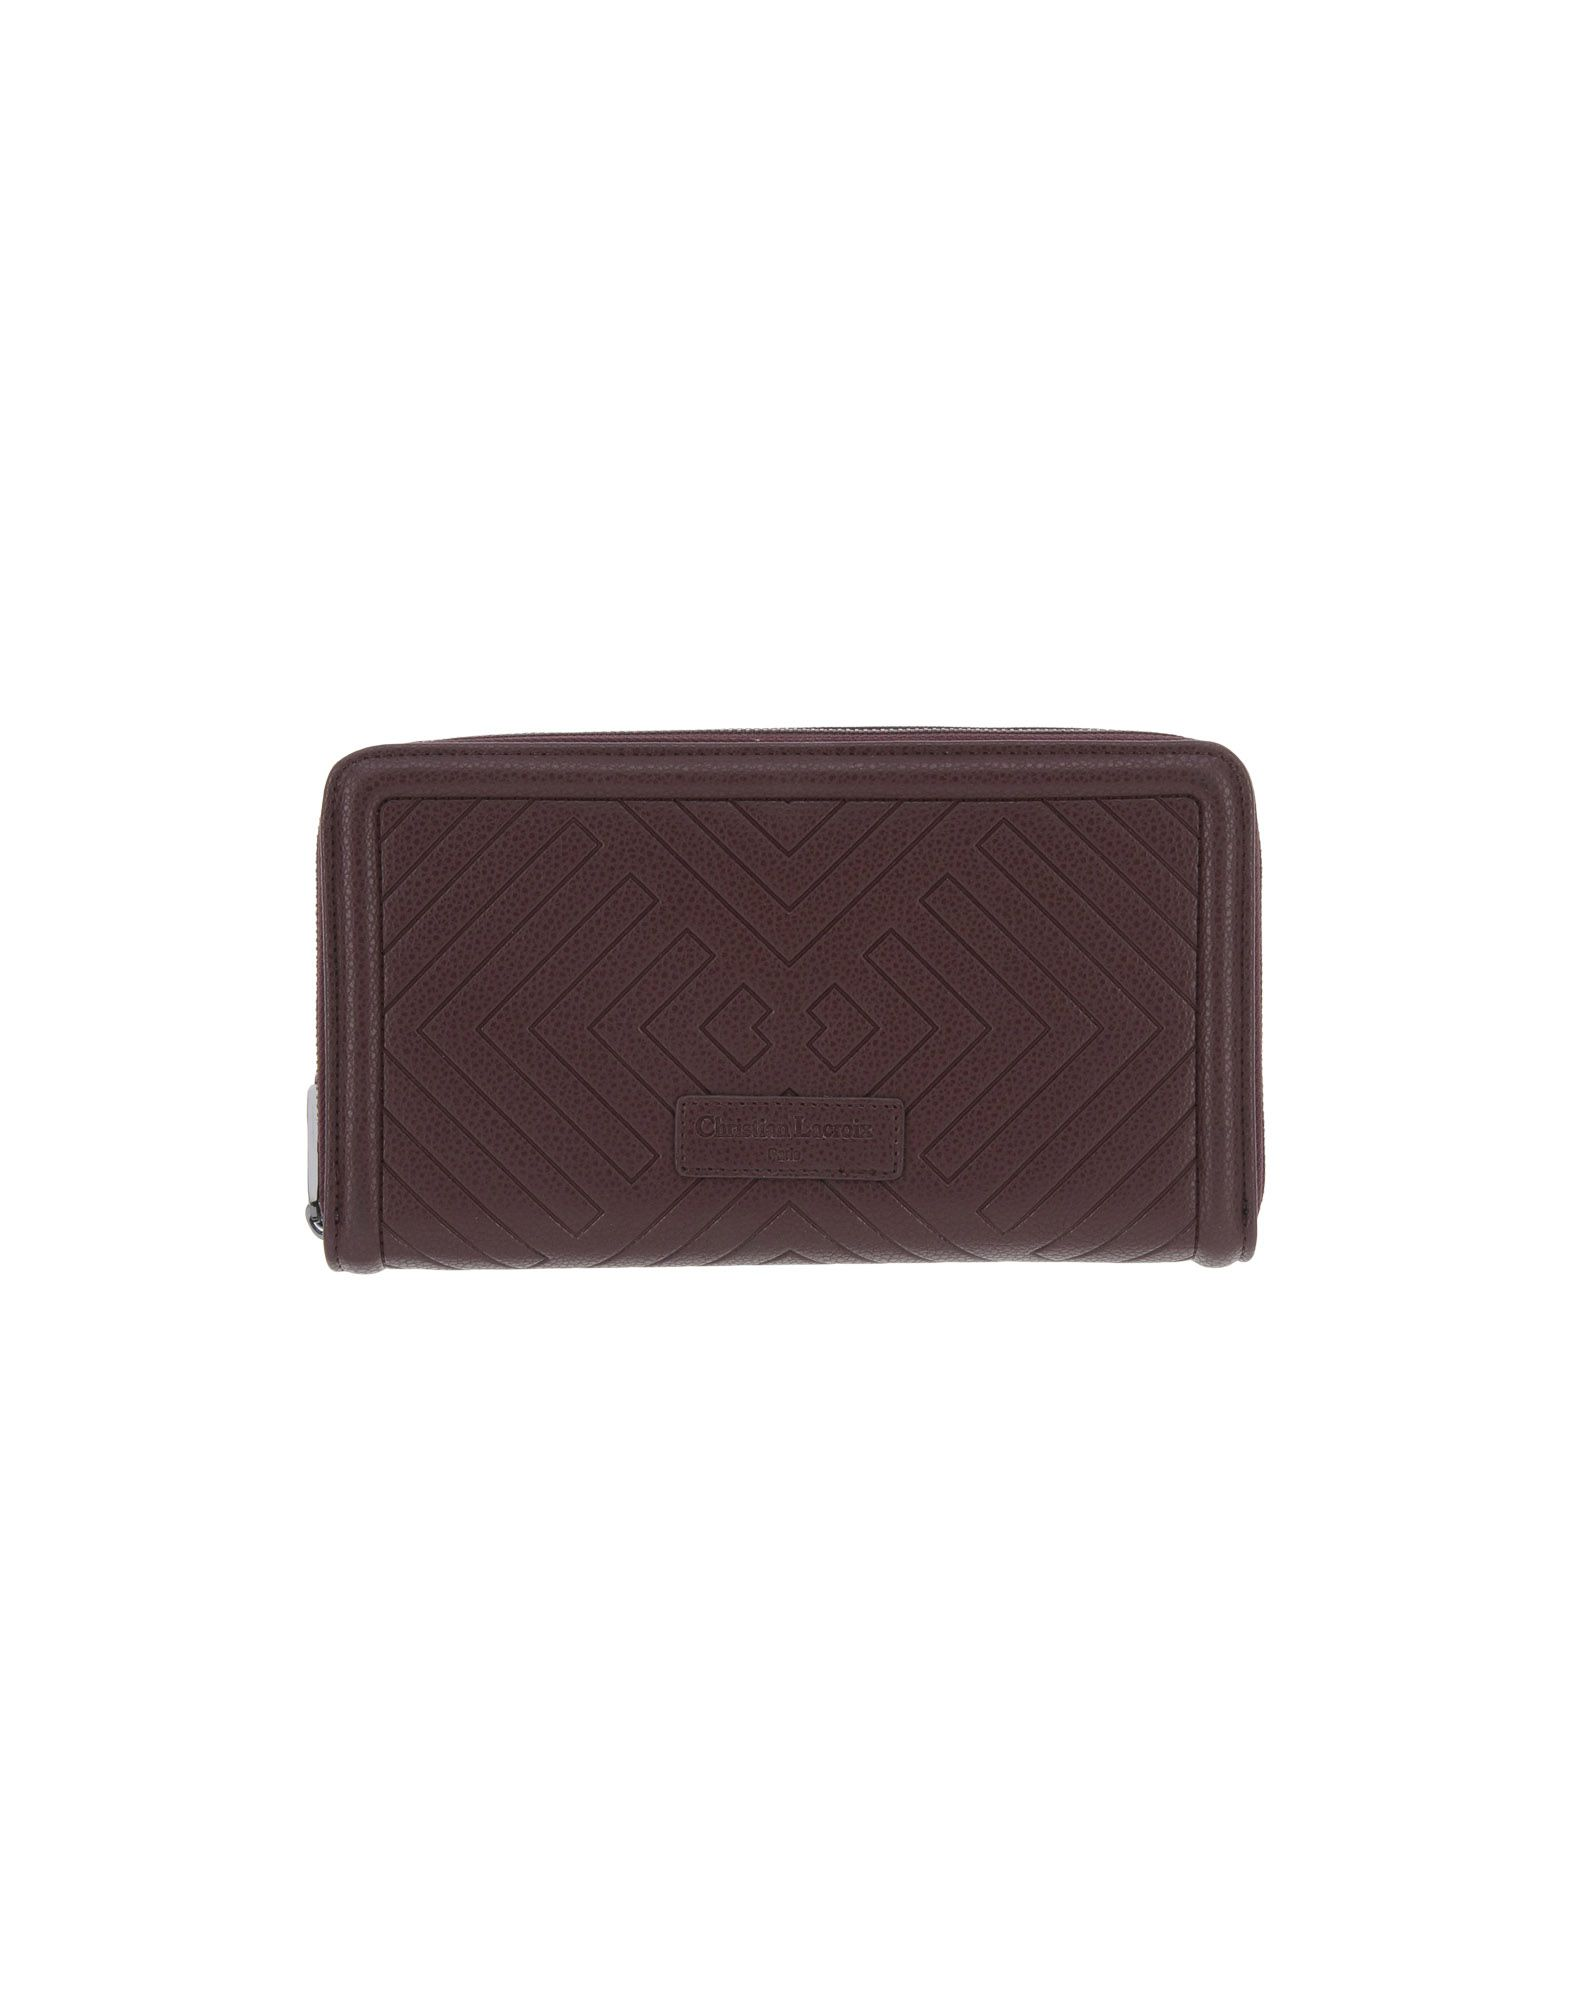 CHRISTIAN LACROIX Wallet in Cocoa